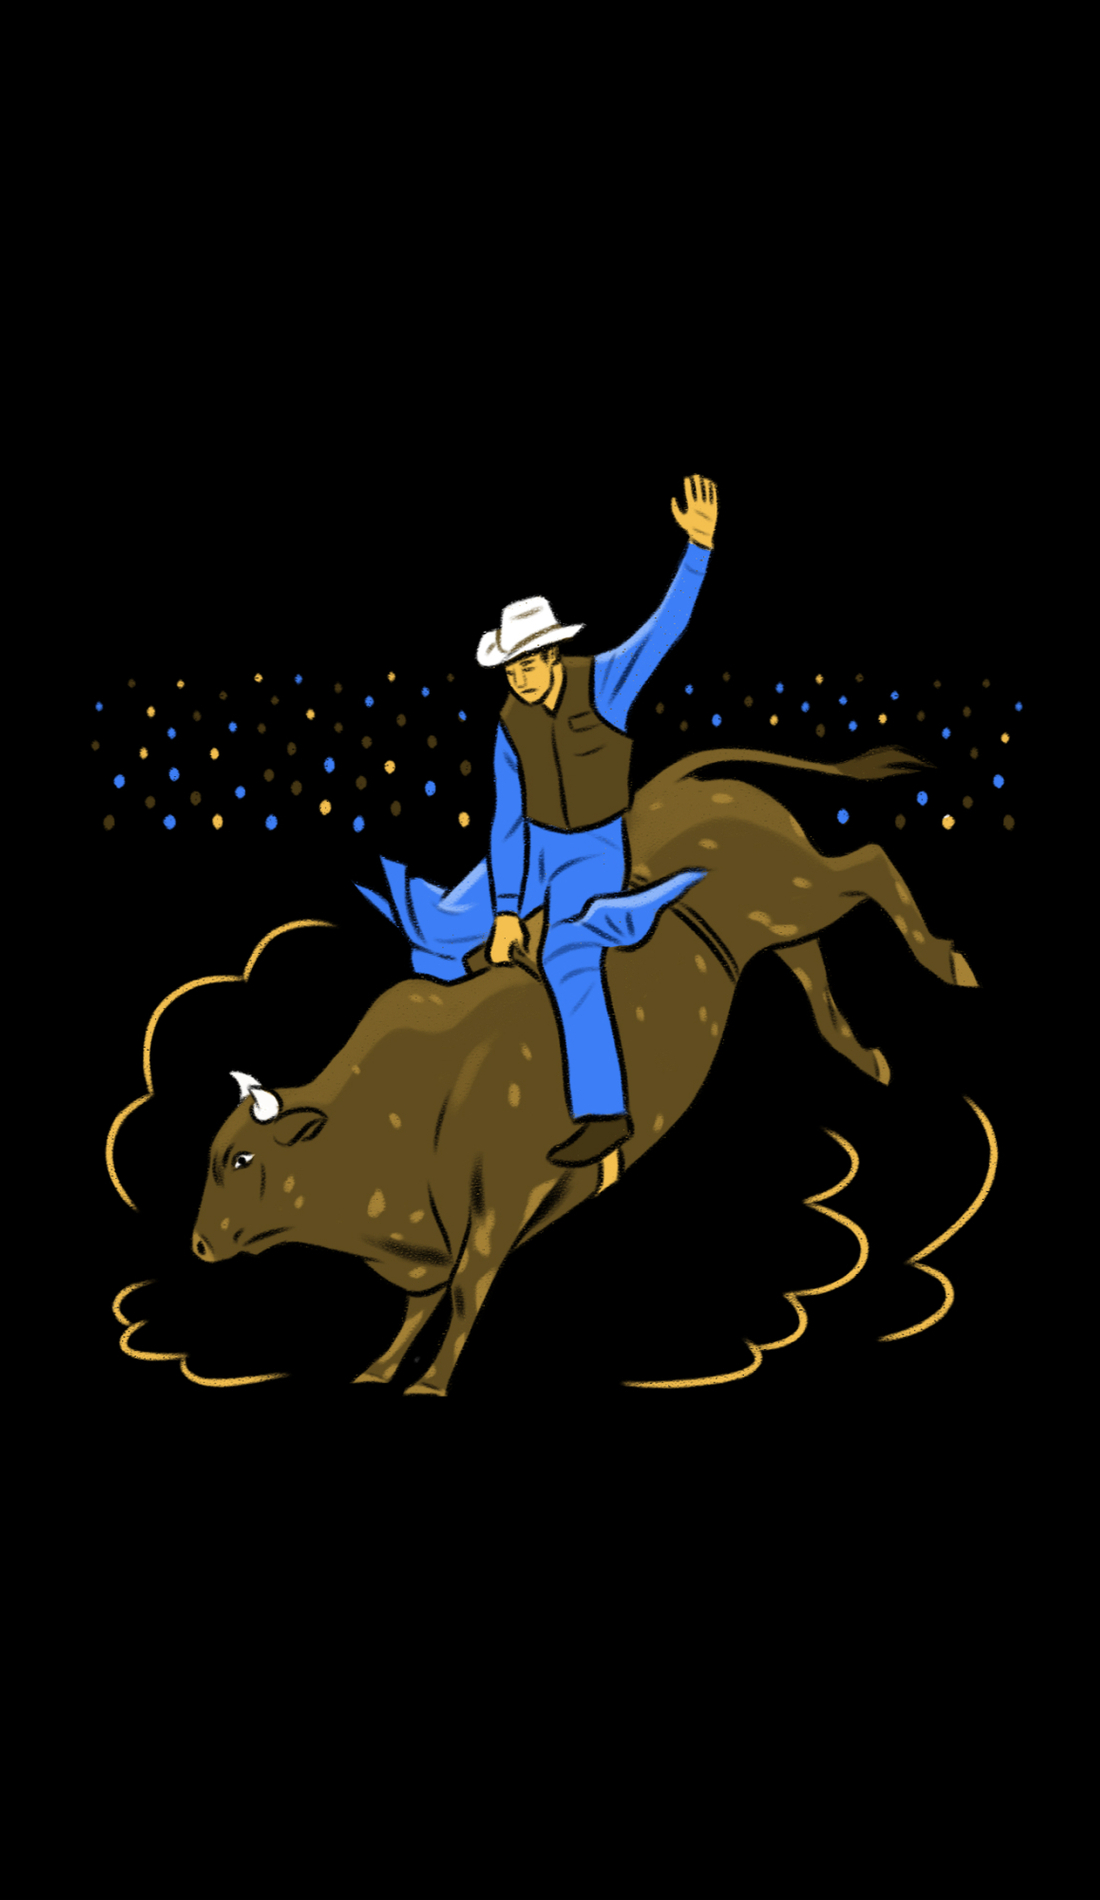 A PRCA Rodeo live event